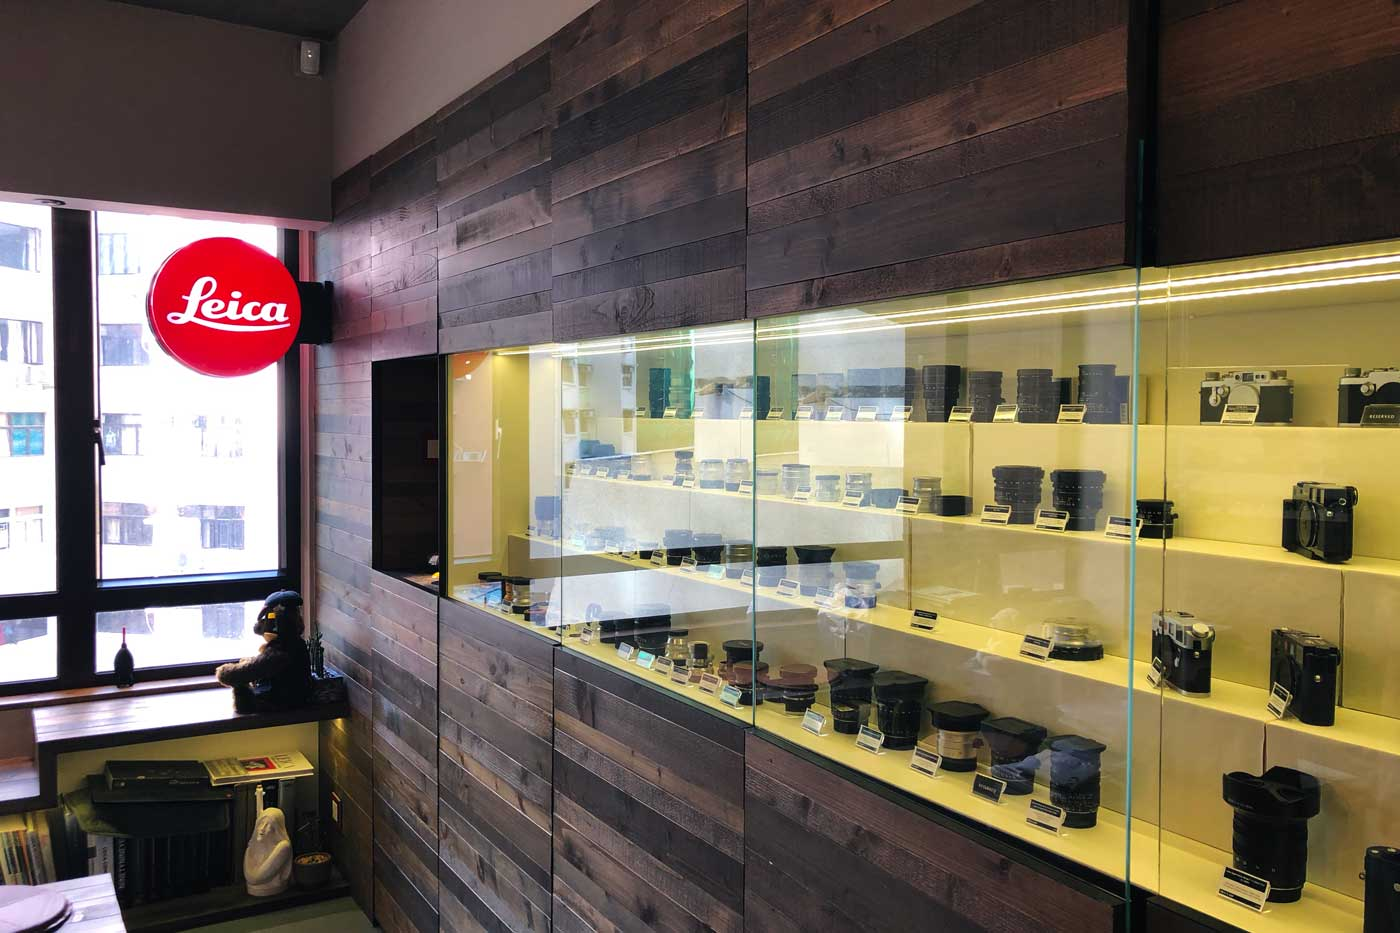 Camera-shop-shops-hong-kong-hk-location-guide-tips-purchase-consignment-second-hand-pre-owned-lenses-cameras-fotopia-display-cabinet-leica-specialist-medium-format-outlay